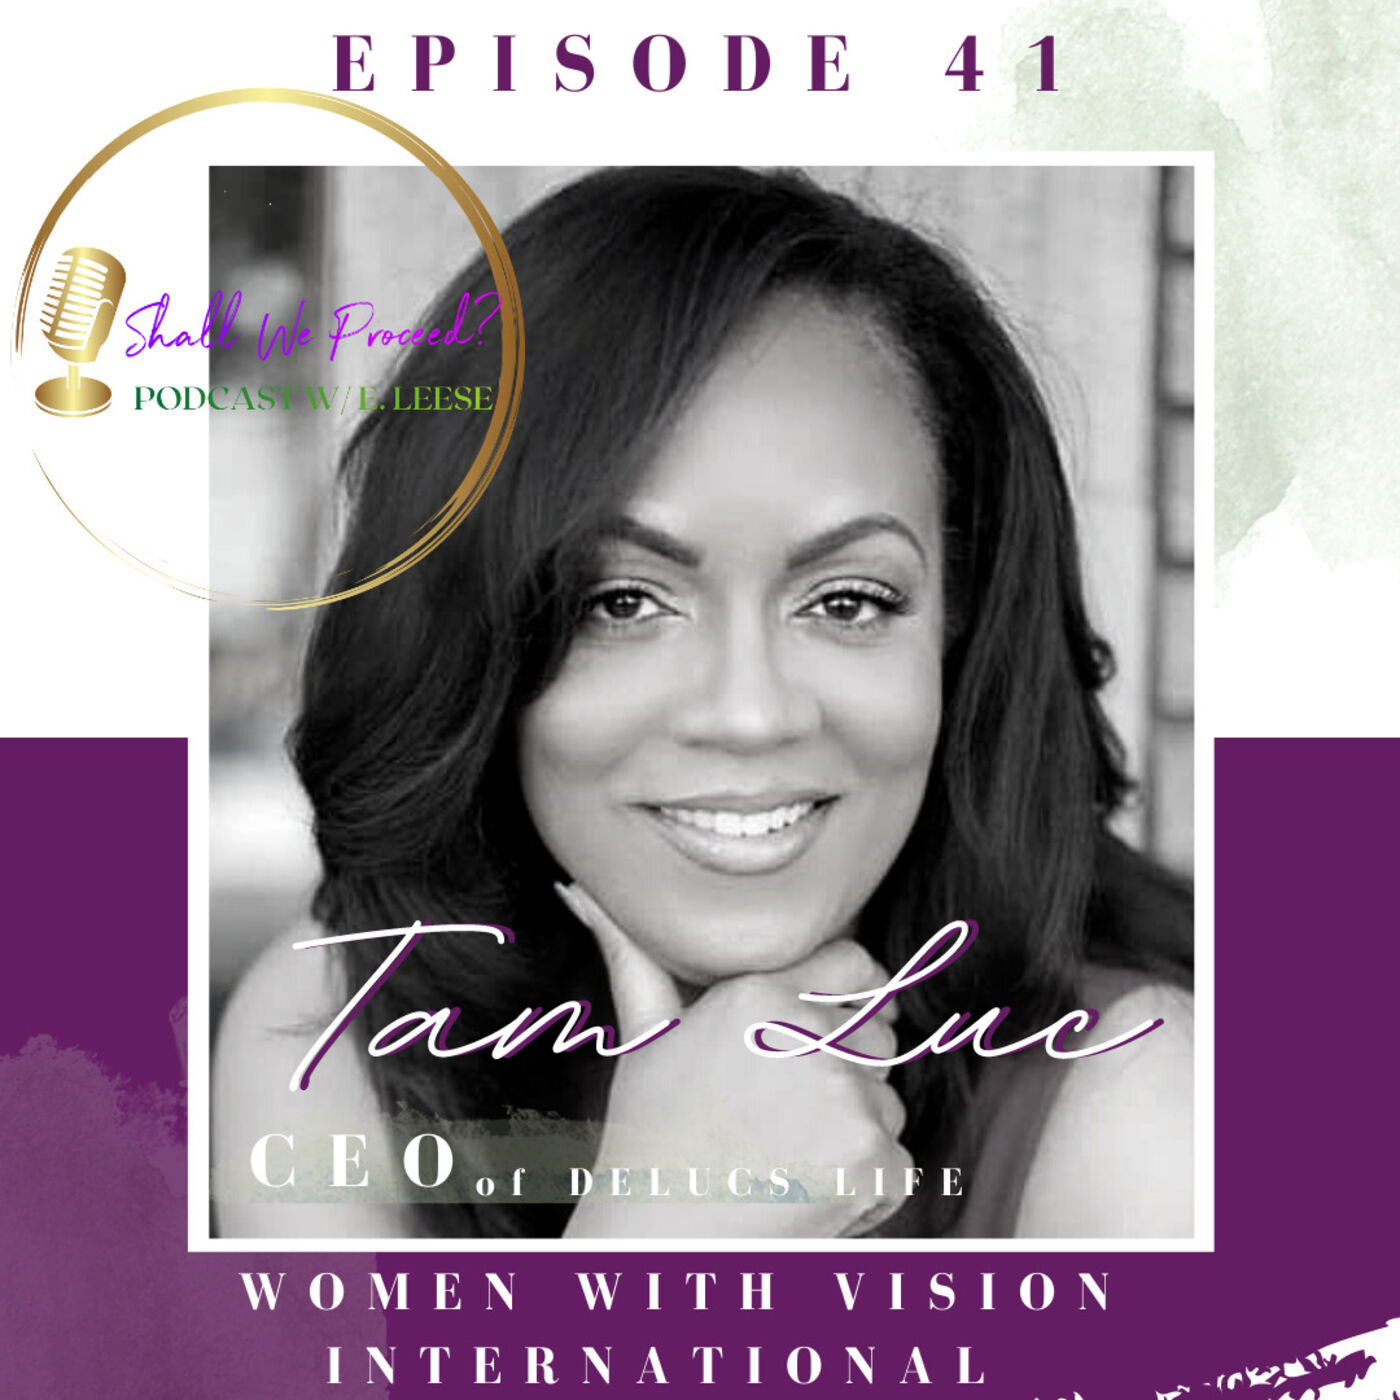 Women Who Boss Up w/ DelucsLife Media CEO Tam Luc